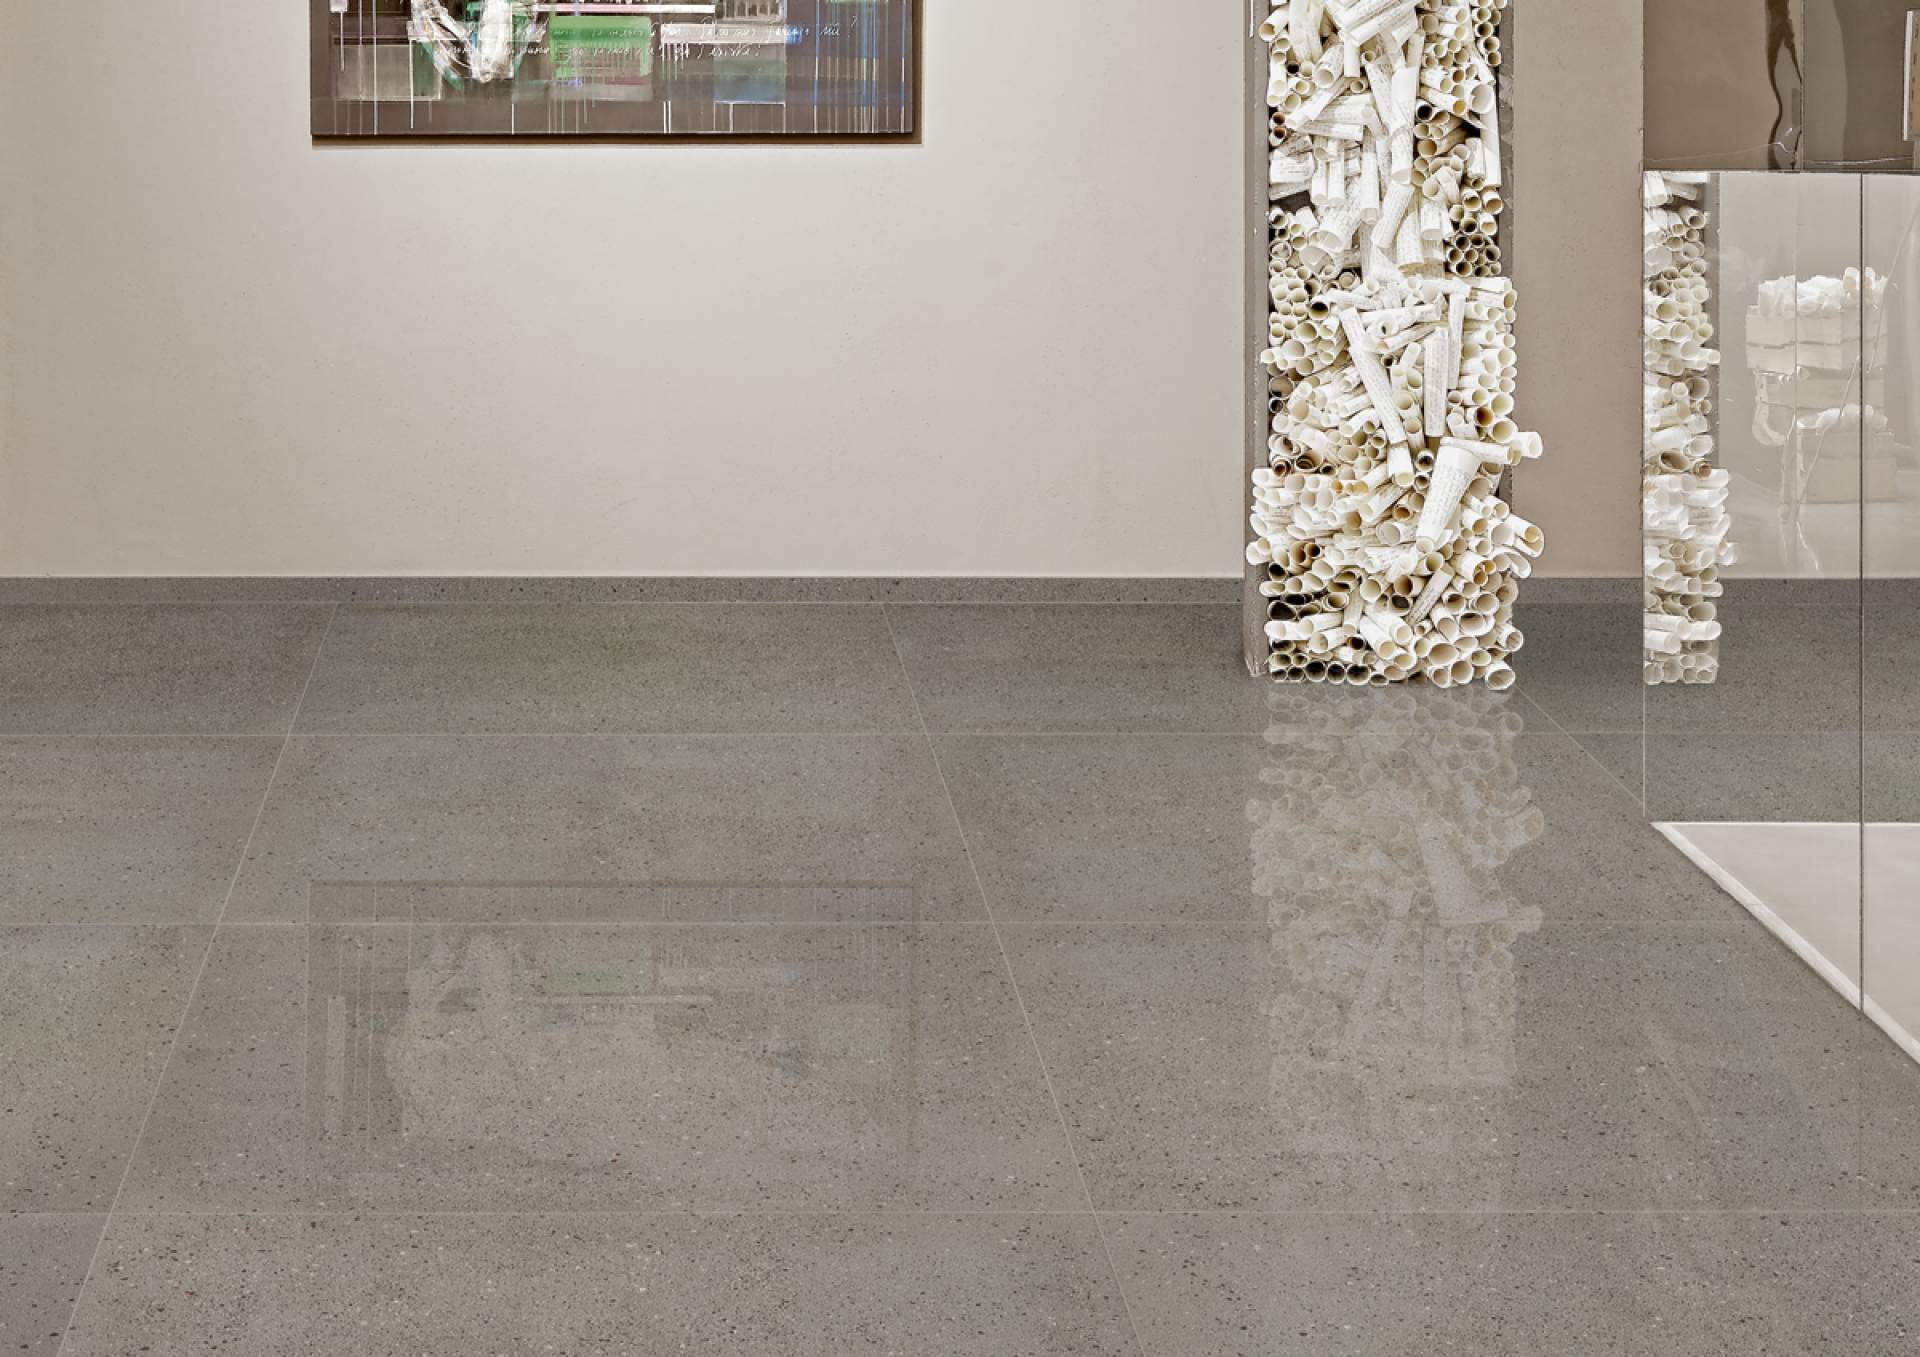 Technical Concrete gallery setting with grey tile